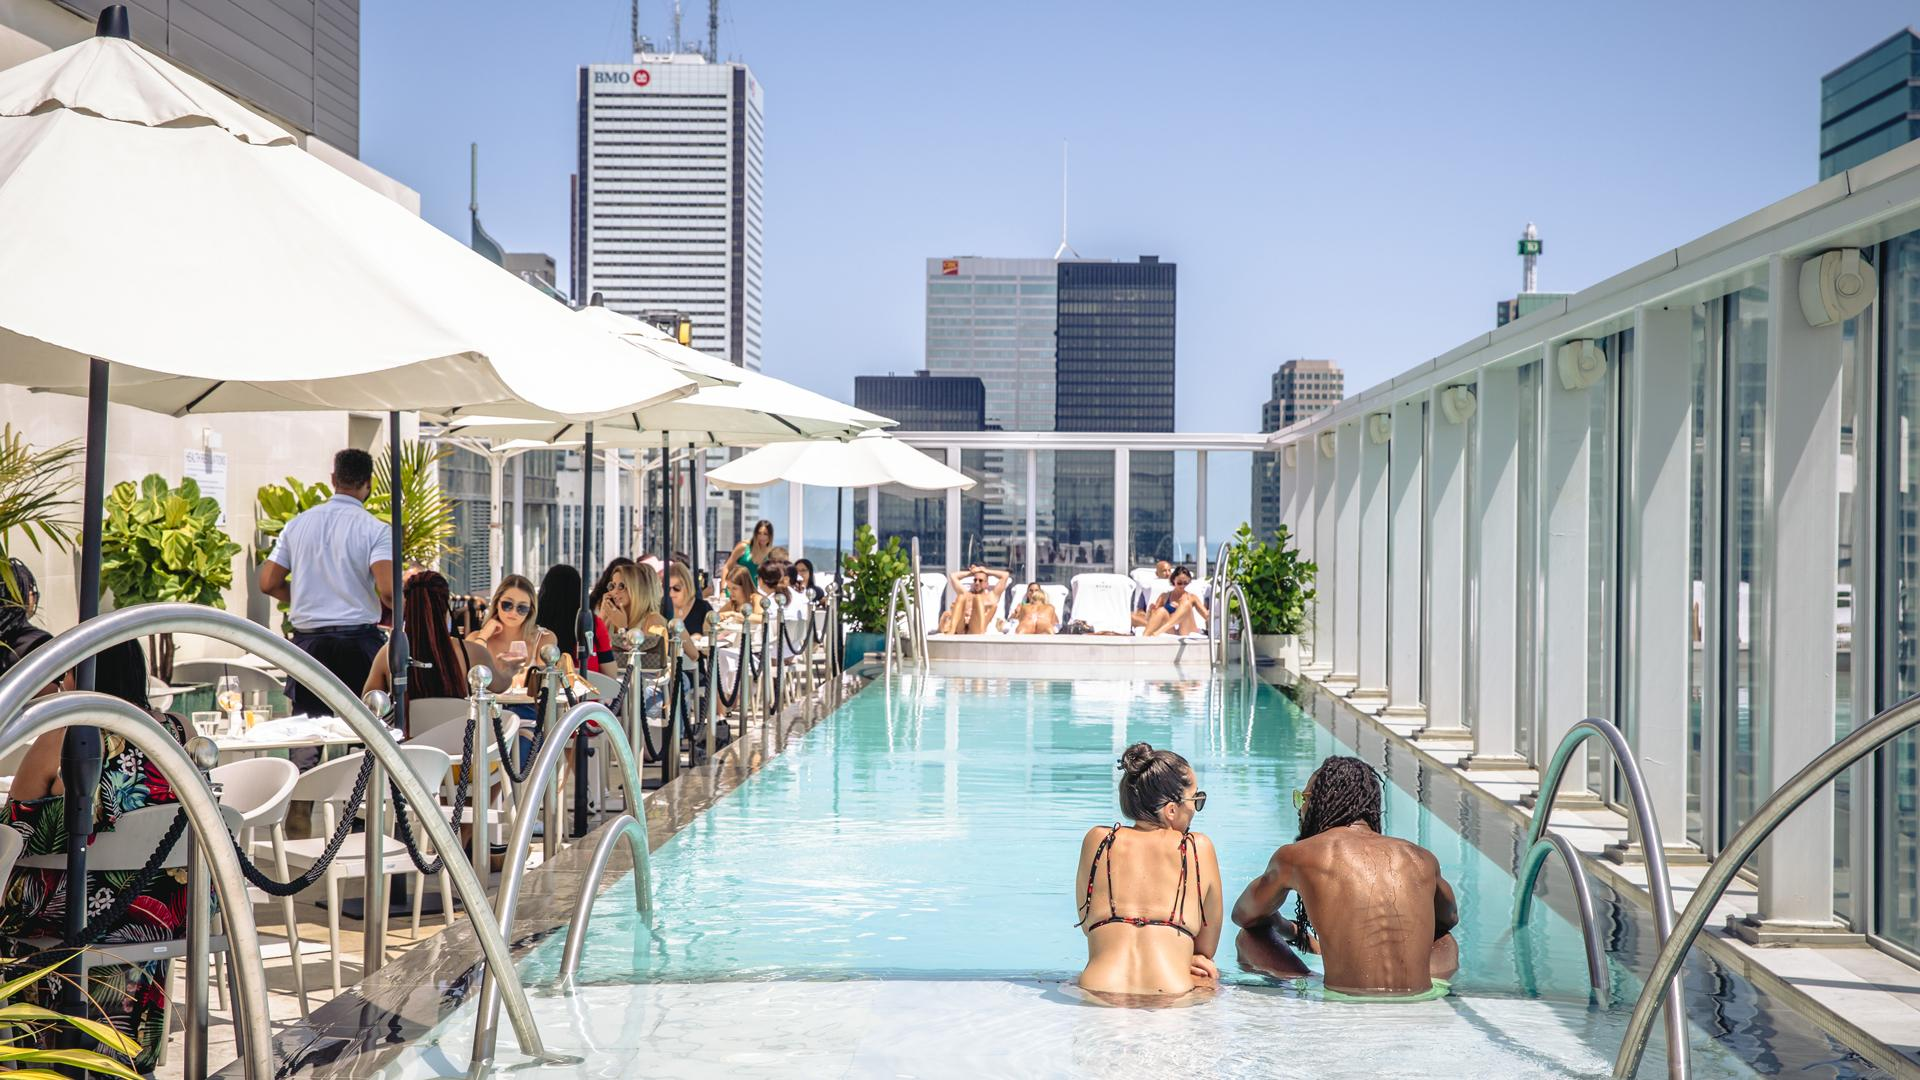 The best rooftop patios in Toronto | KOST sits atop the 44th floor of the Bisha Hotel